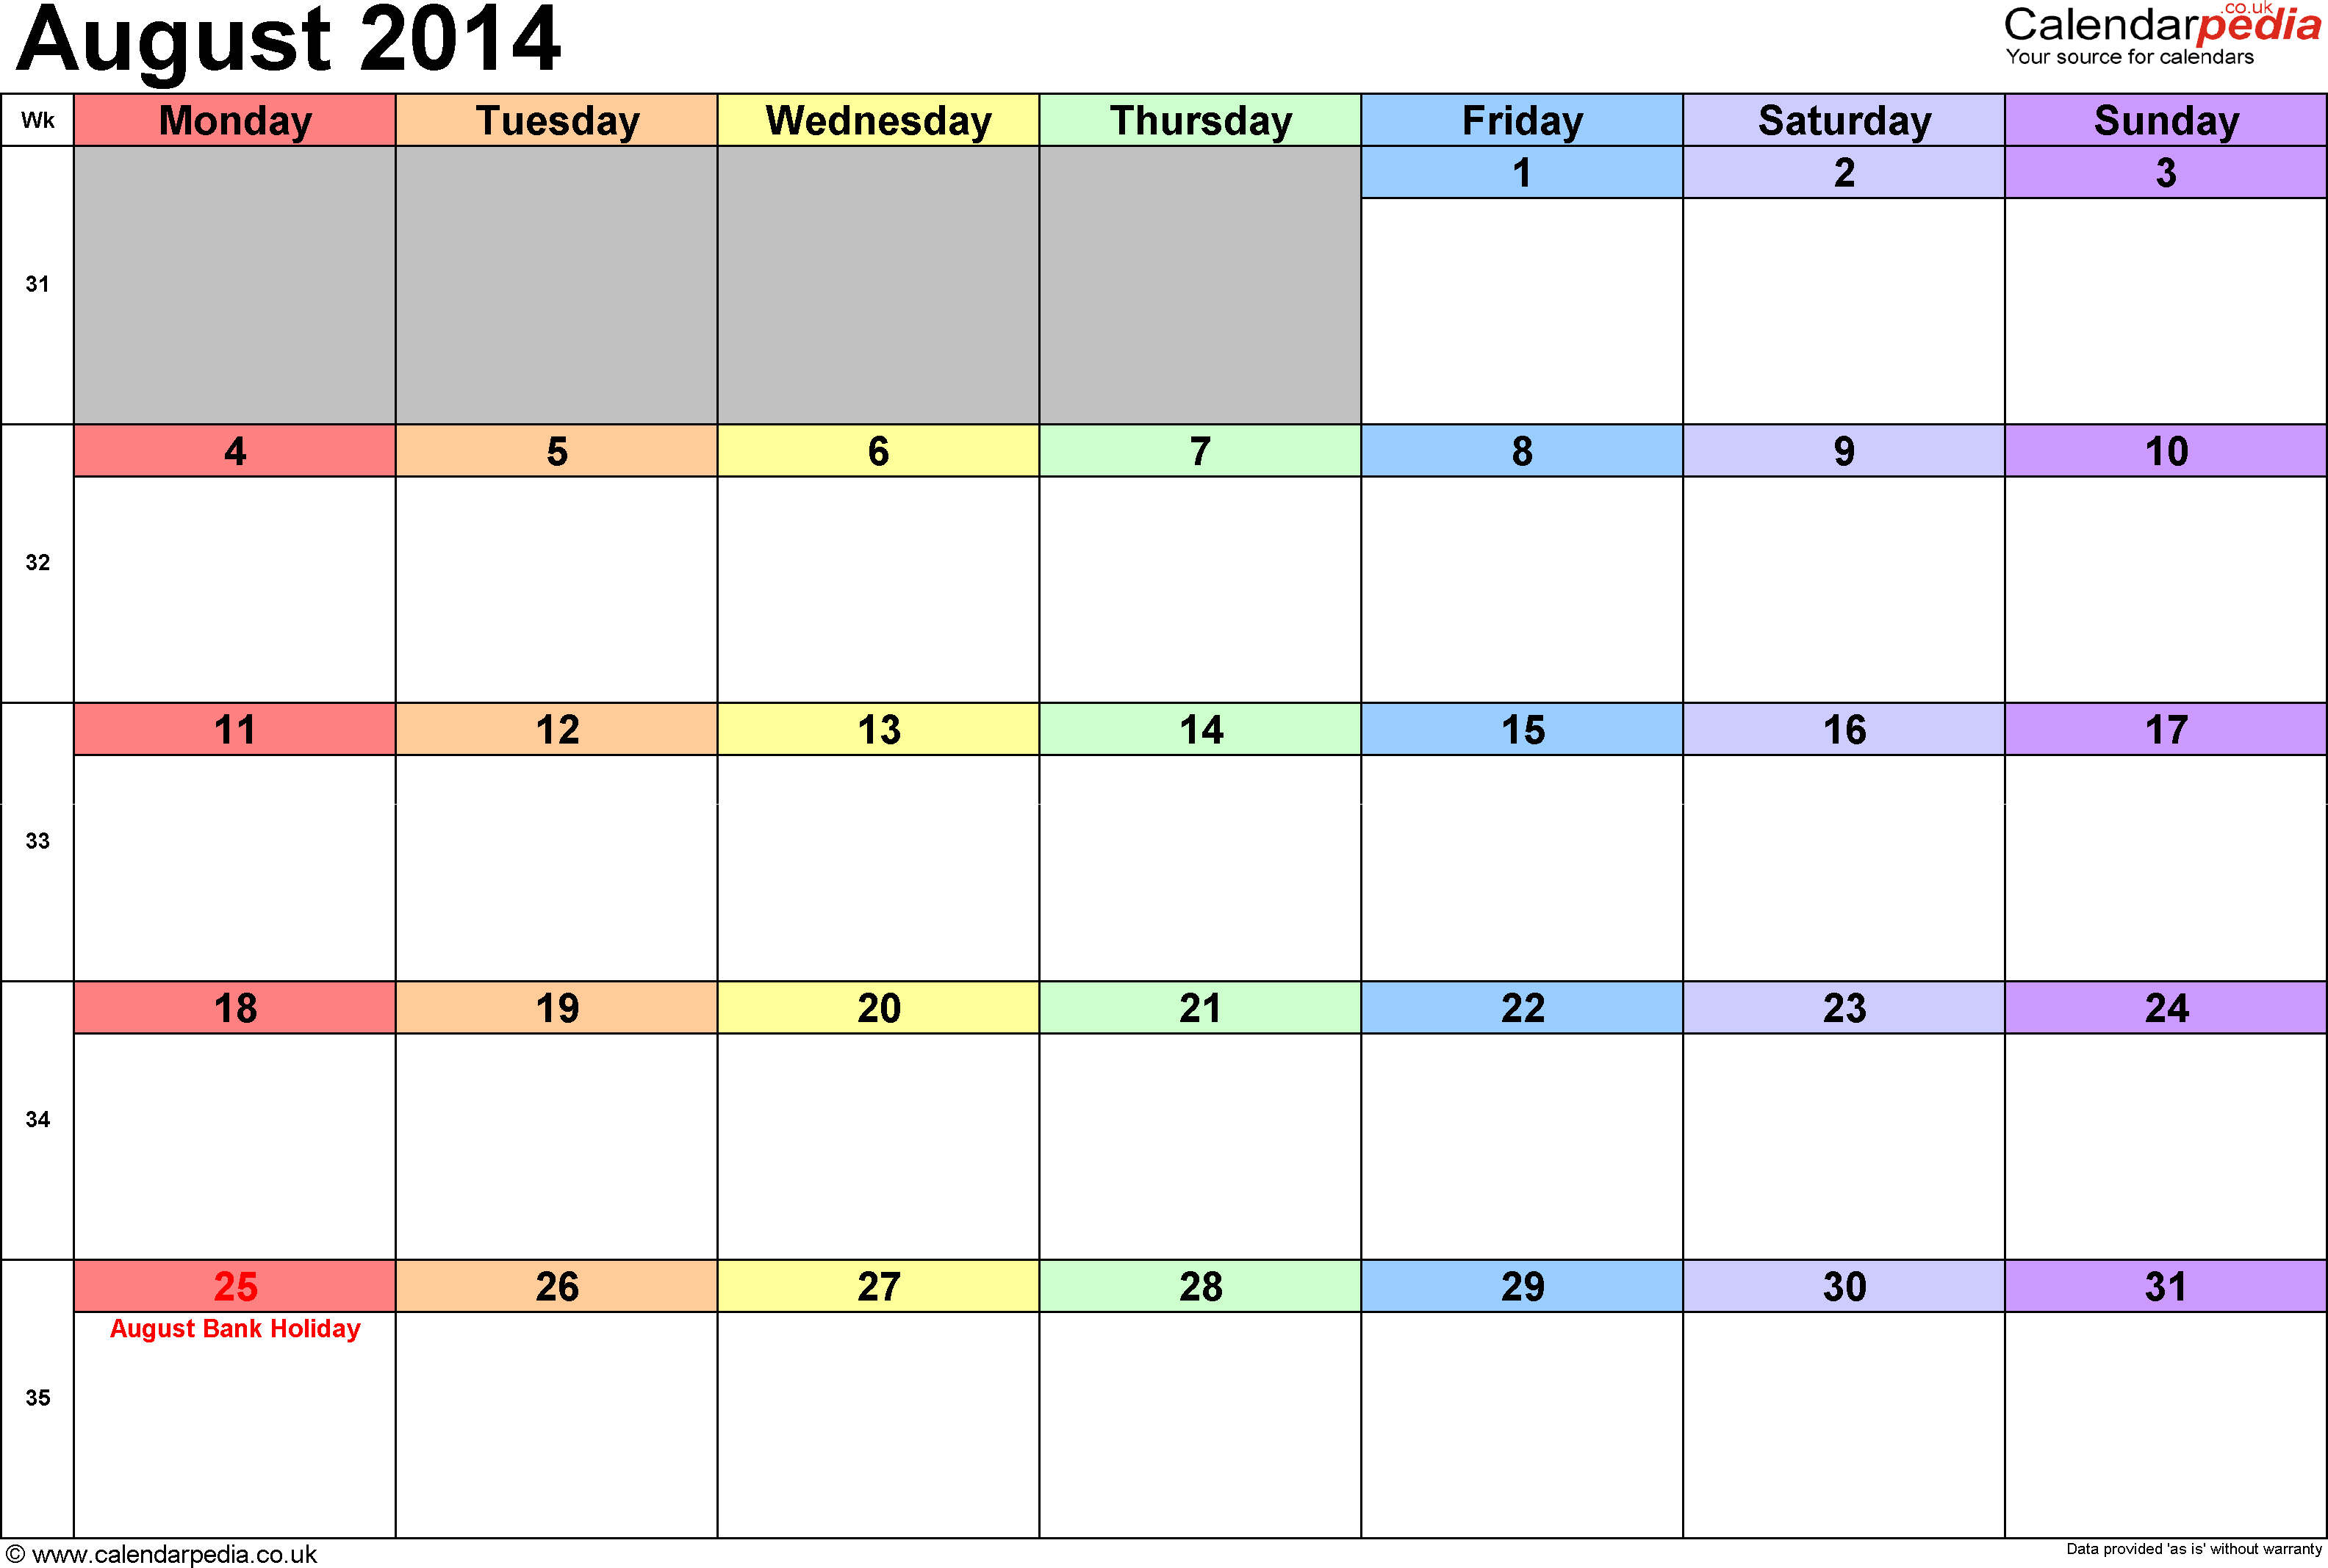 Calendar August 2014, landscape orientation, 1 page, with UK bank holidays and week numbers